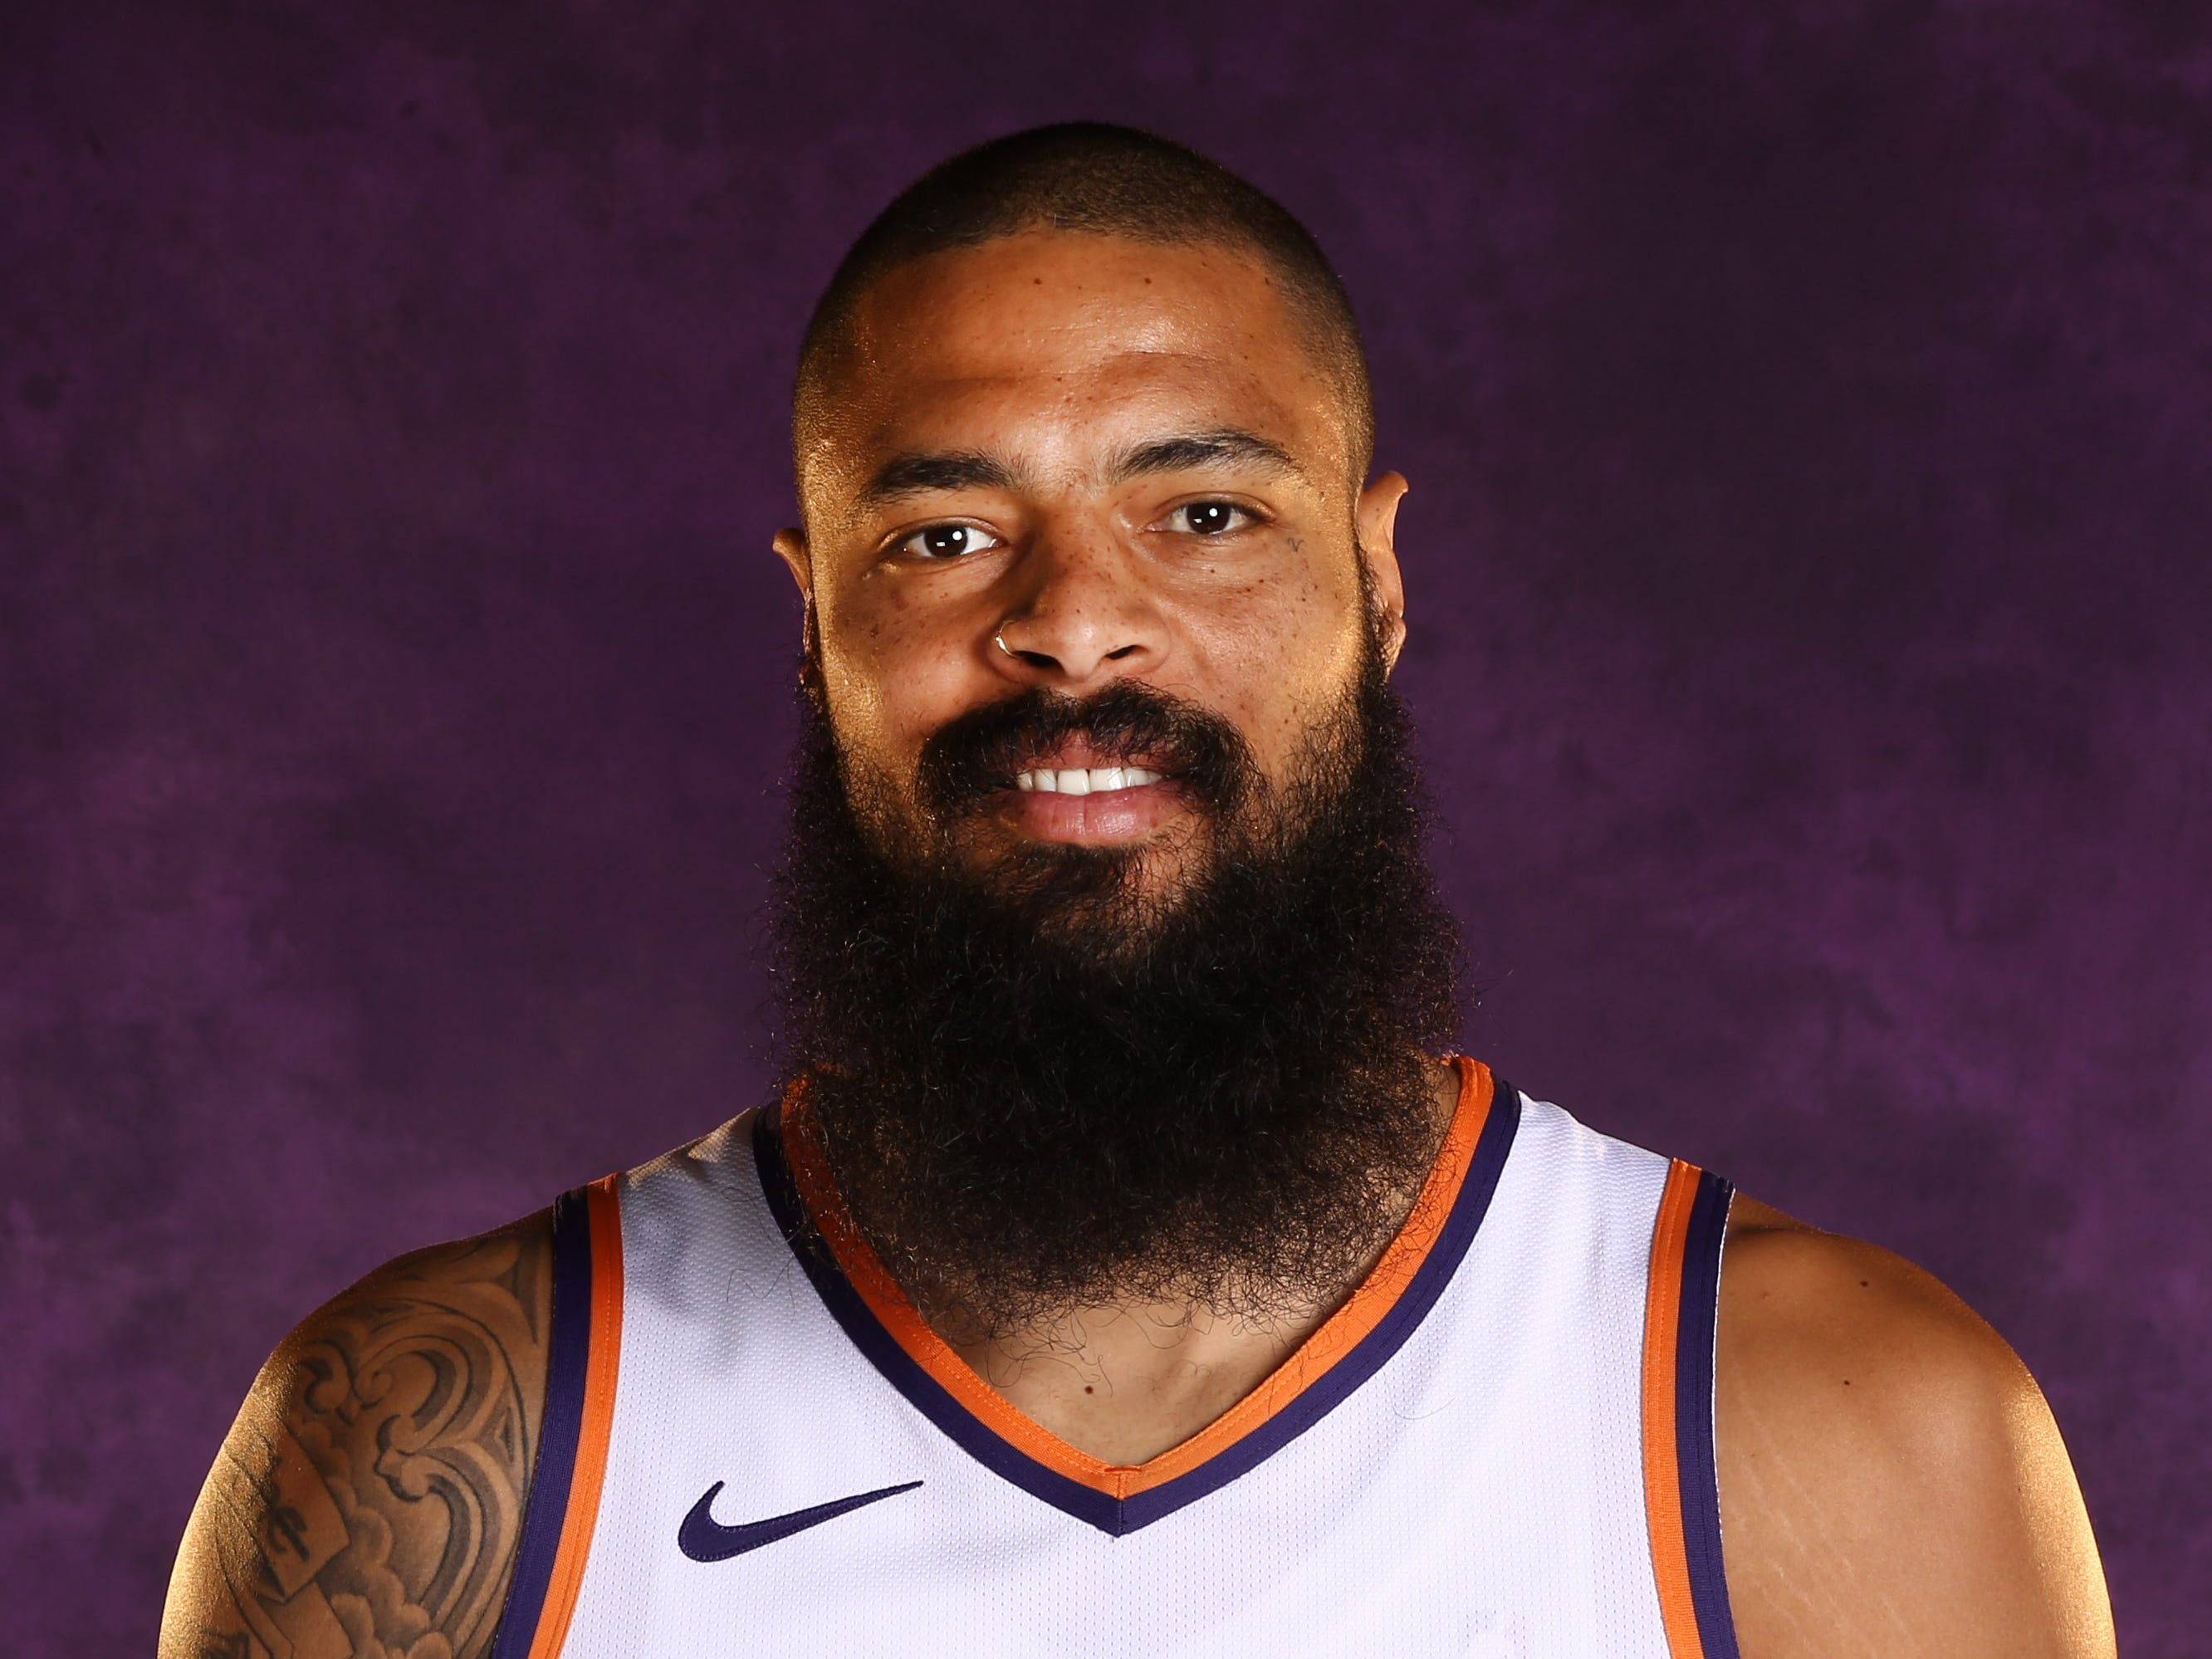 Phoenix Suns center Tyson Chandler during media day at Talking Stick Resort Arena on Aug. 21, 2018, in Phoenix, Ariz.